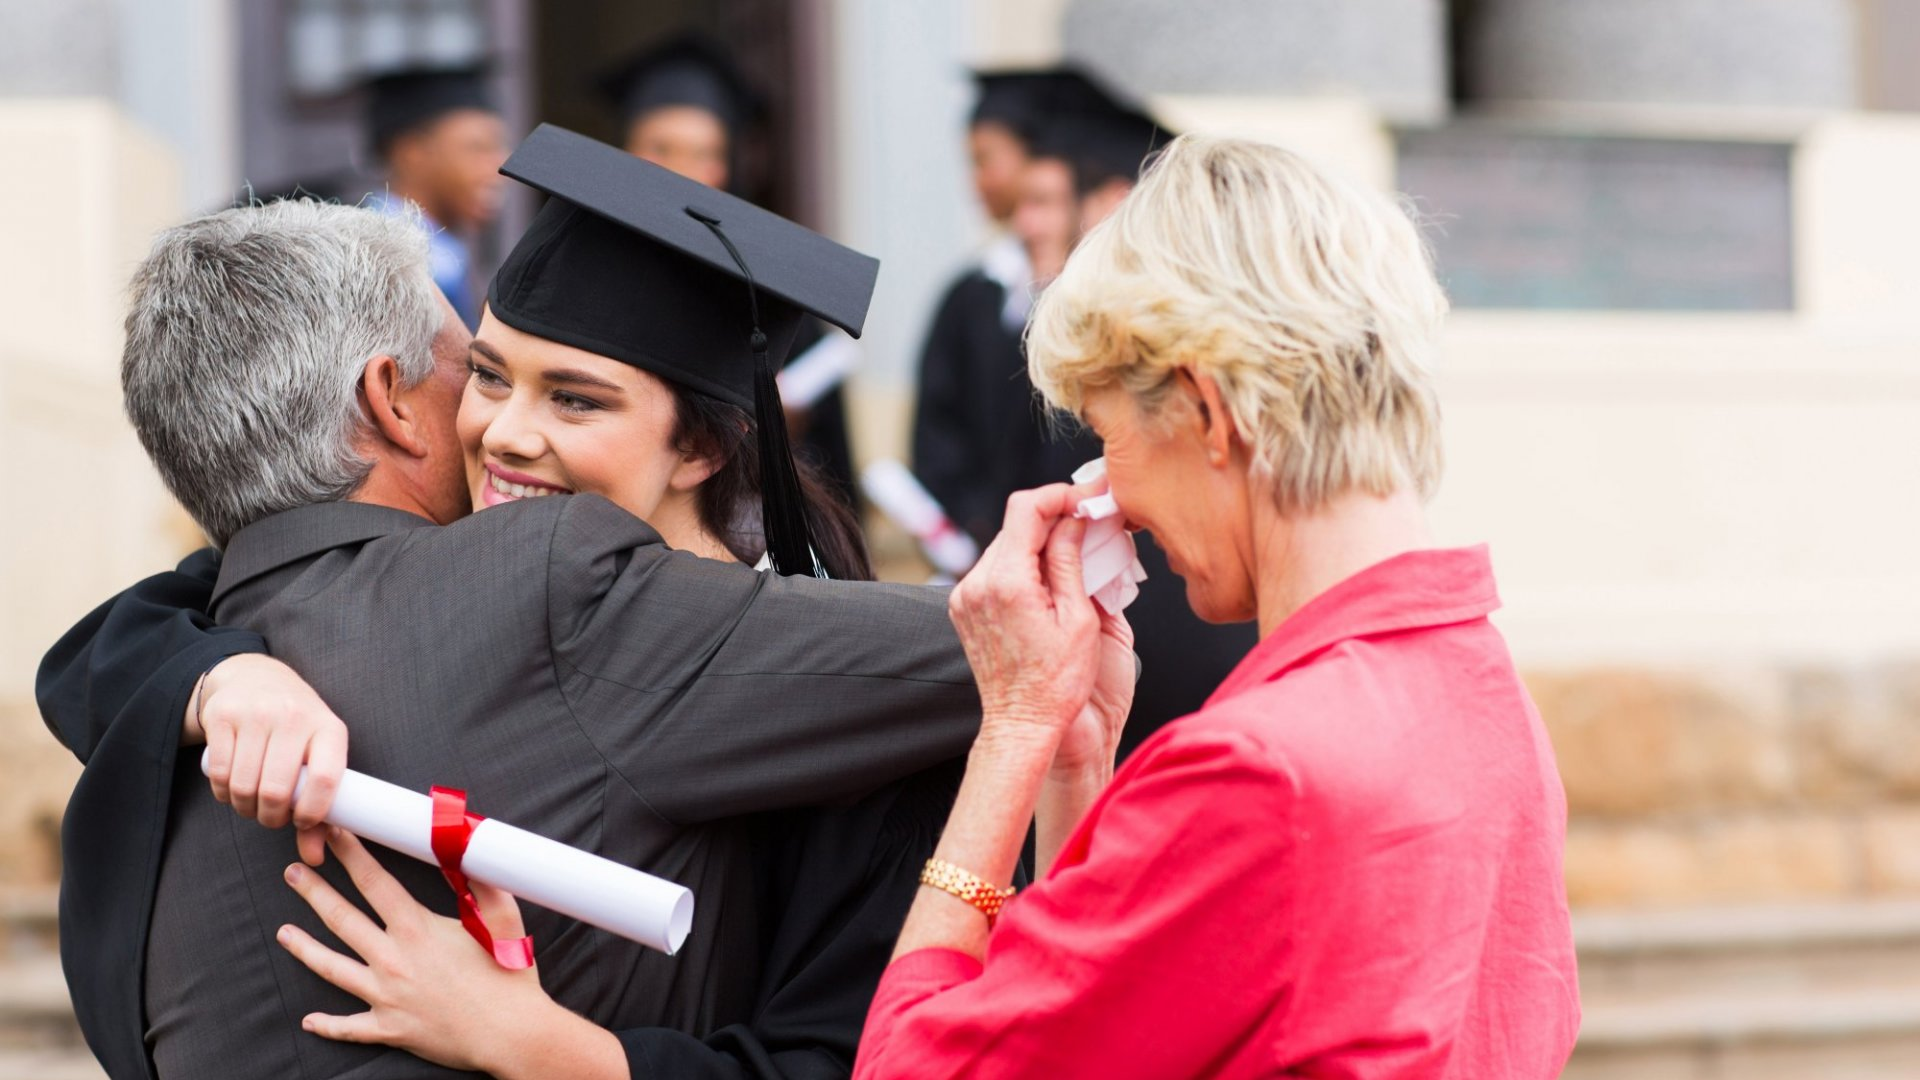 4 Things That Every Parent Should Tell Their Kids on Graduation Day